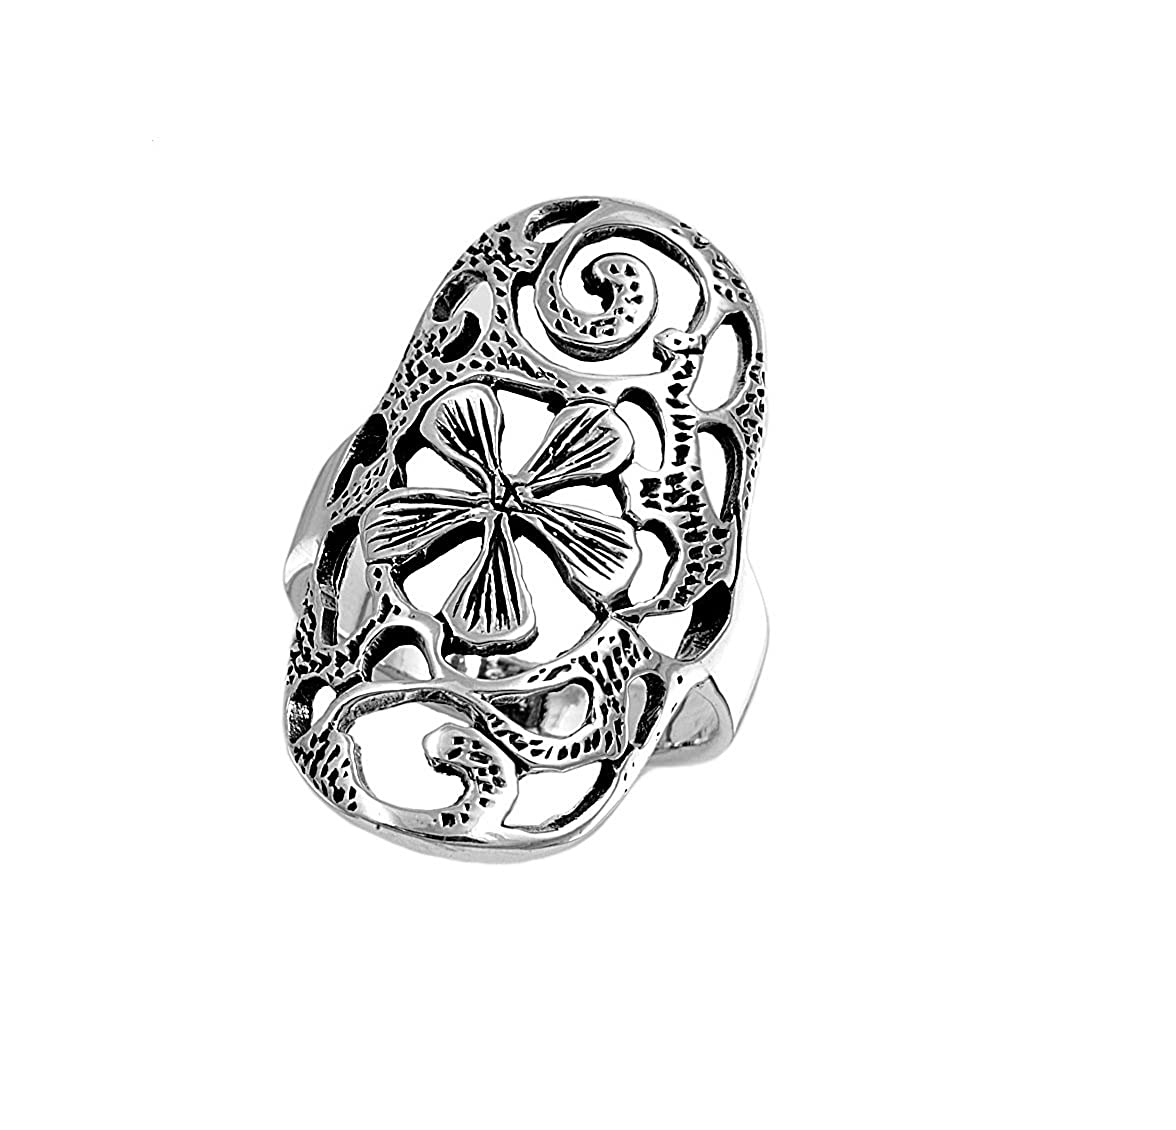 Princess Kylie 925 Sterling Silver Ring with Vines Ring